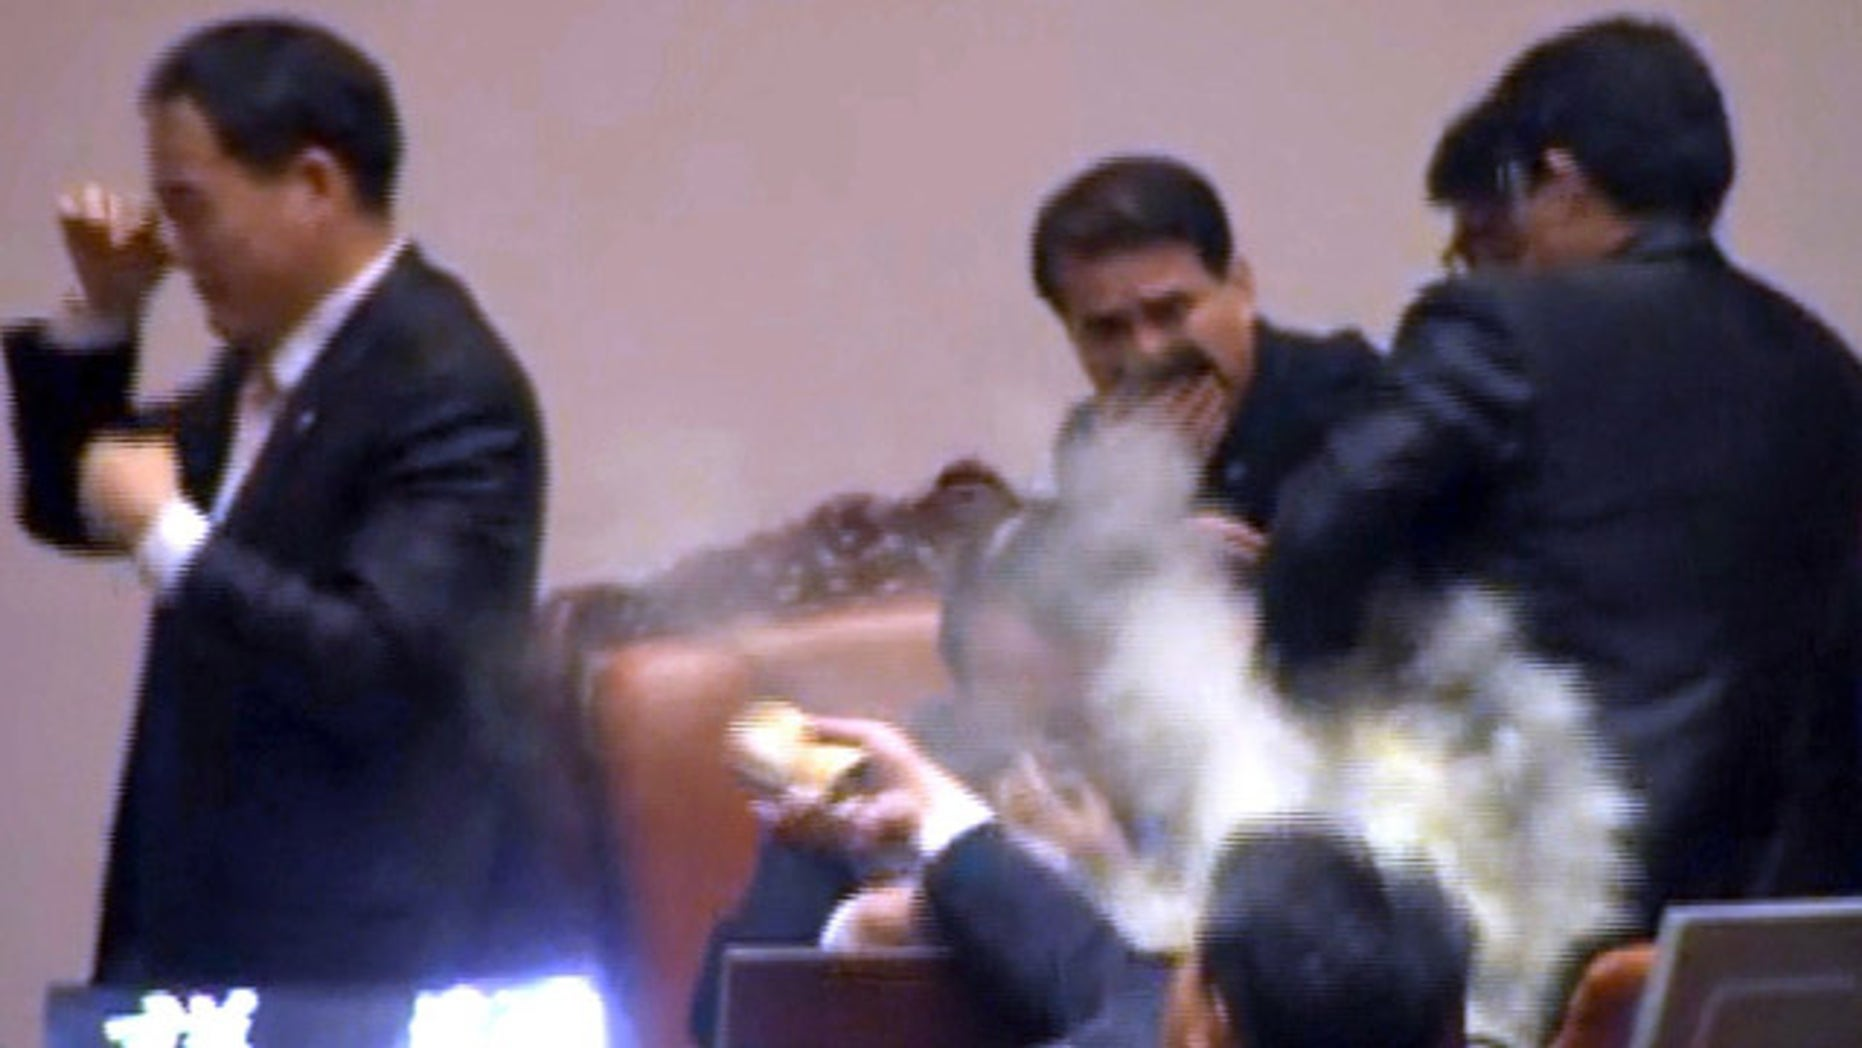 Nov. 22, 2011: Rep. Kim Seon-dong, bottom, of the opposition Democratic Labor Party, explodes tear gas in front of the speaker's chair to block National Assembly Vice Speaker Chung Eui-hwa, center, from pushing for the procedure to handle a pending bill on ratification of a South Korea-U.S. free trade agreement at the National Assembly in Seoul, South Korea.